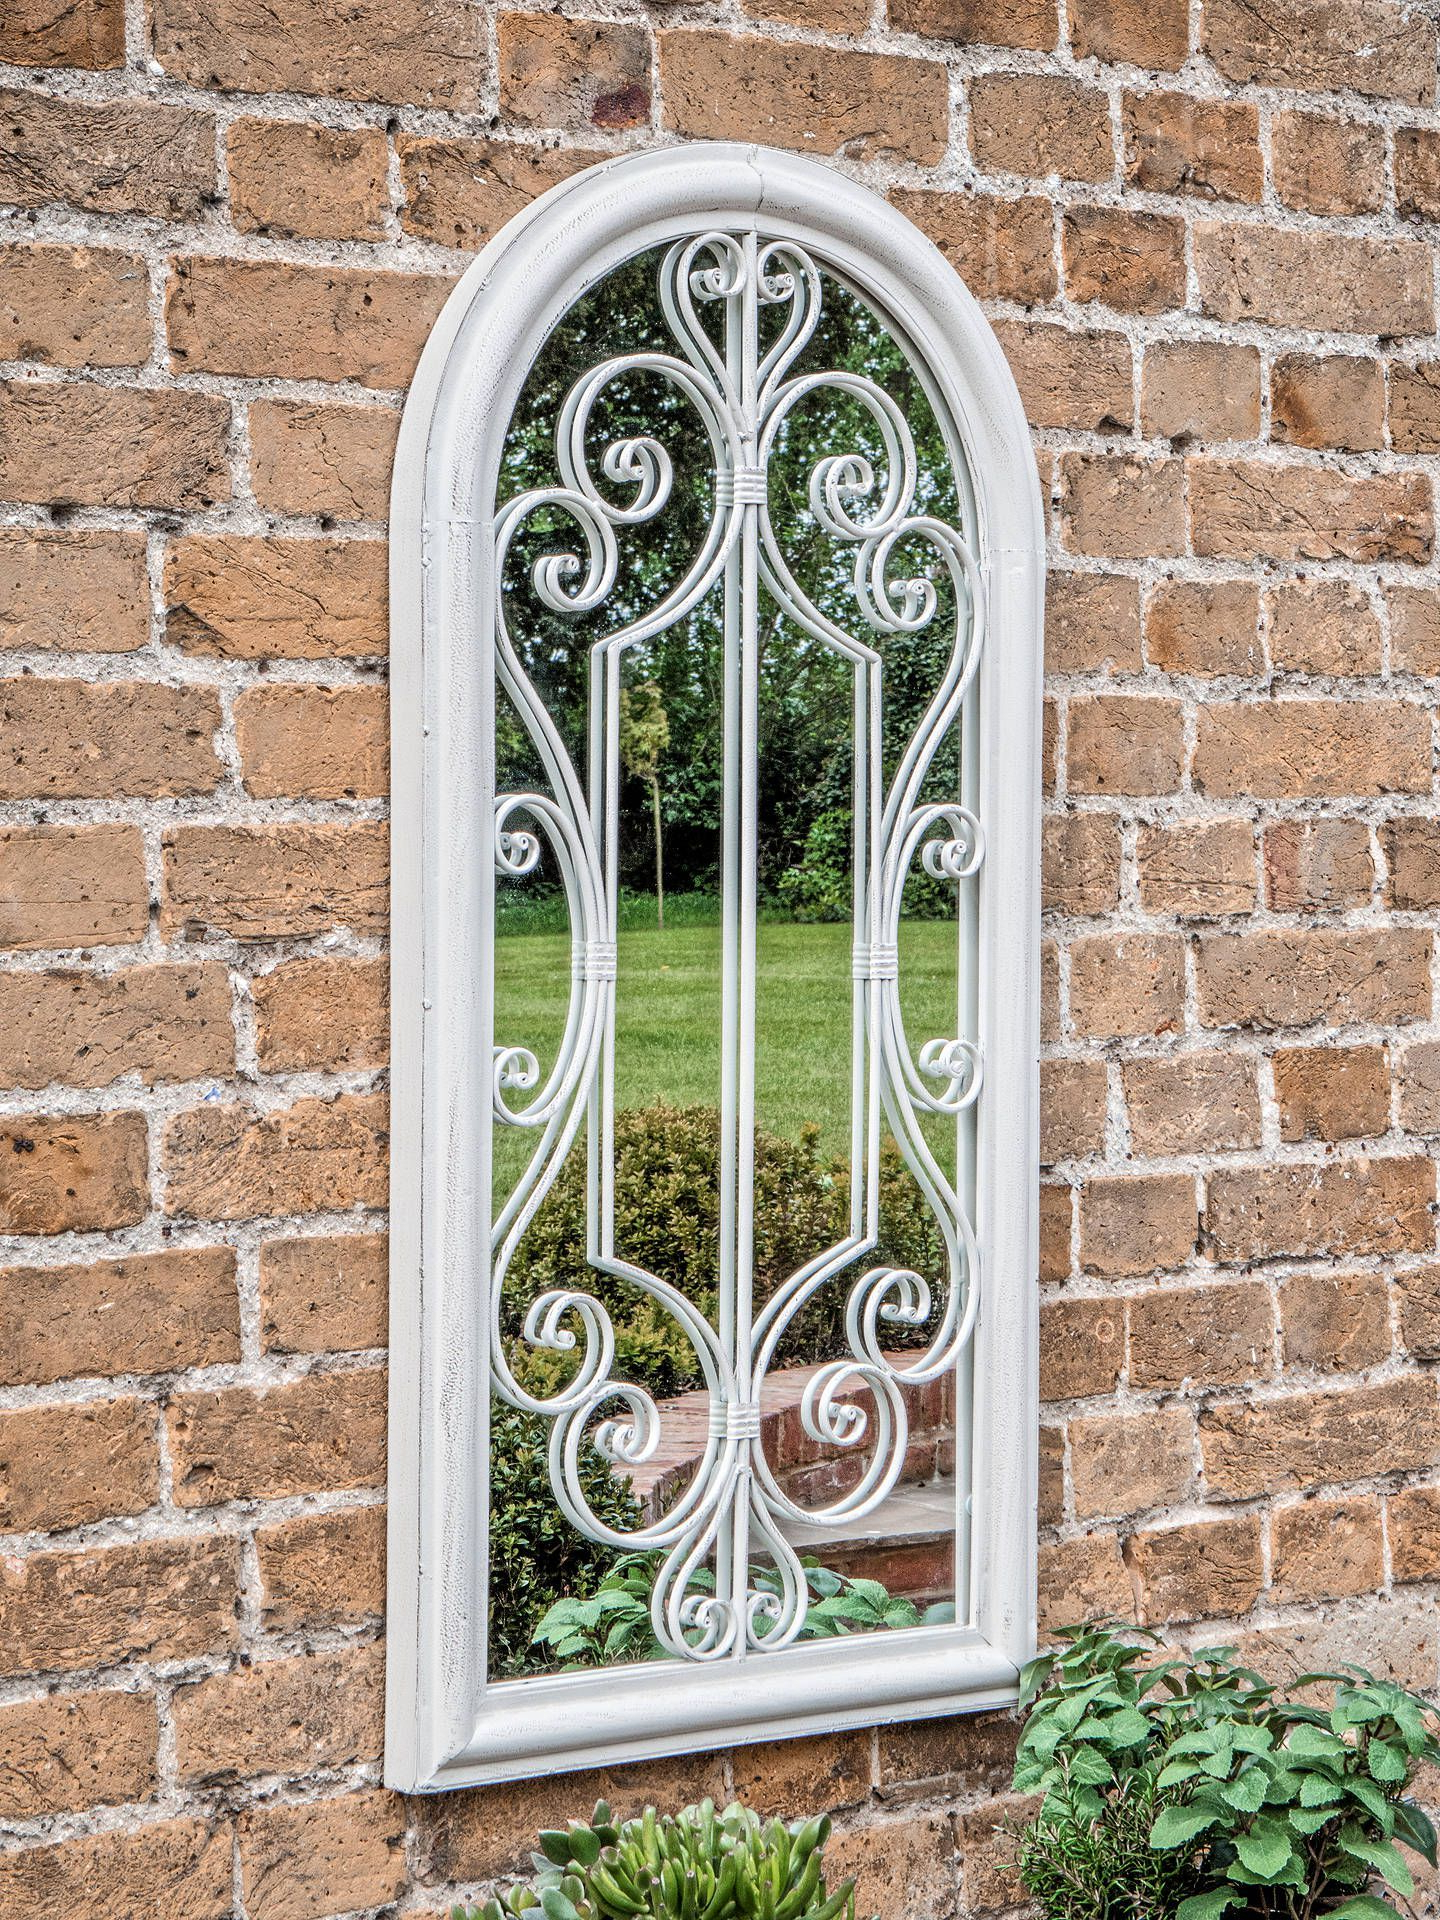 Outdoor Garden Wall Mirrors Within Well Known Fleura Outdoor Garden Wall Ornate Arched Mirror, (View 6 of 20)